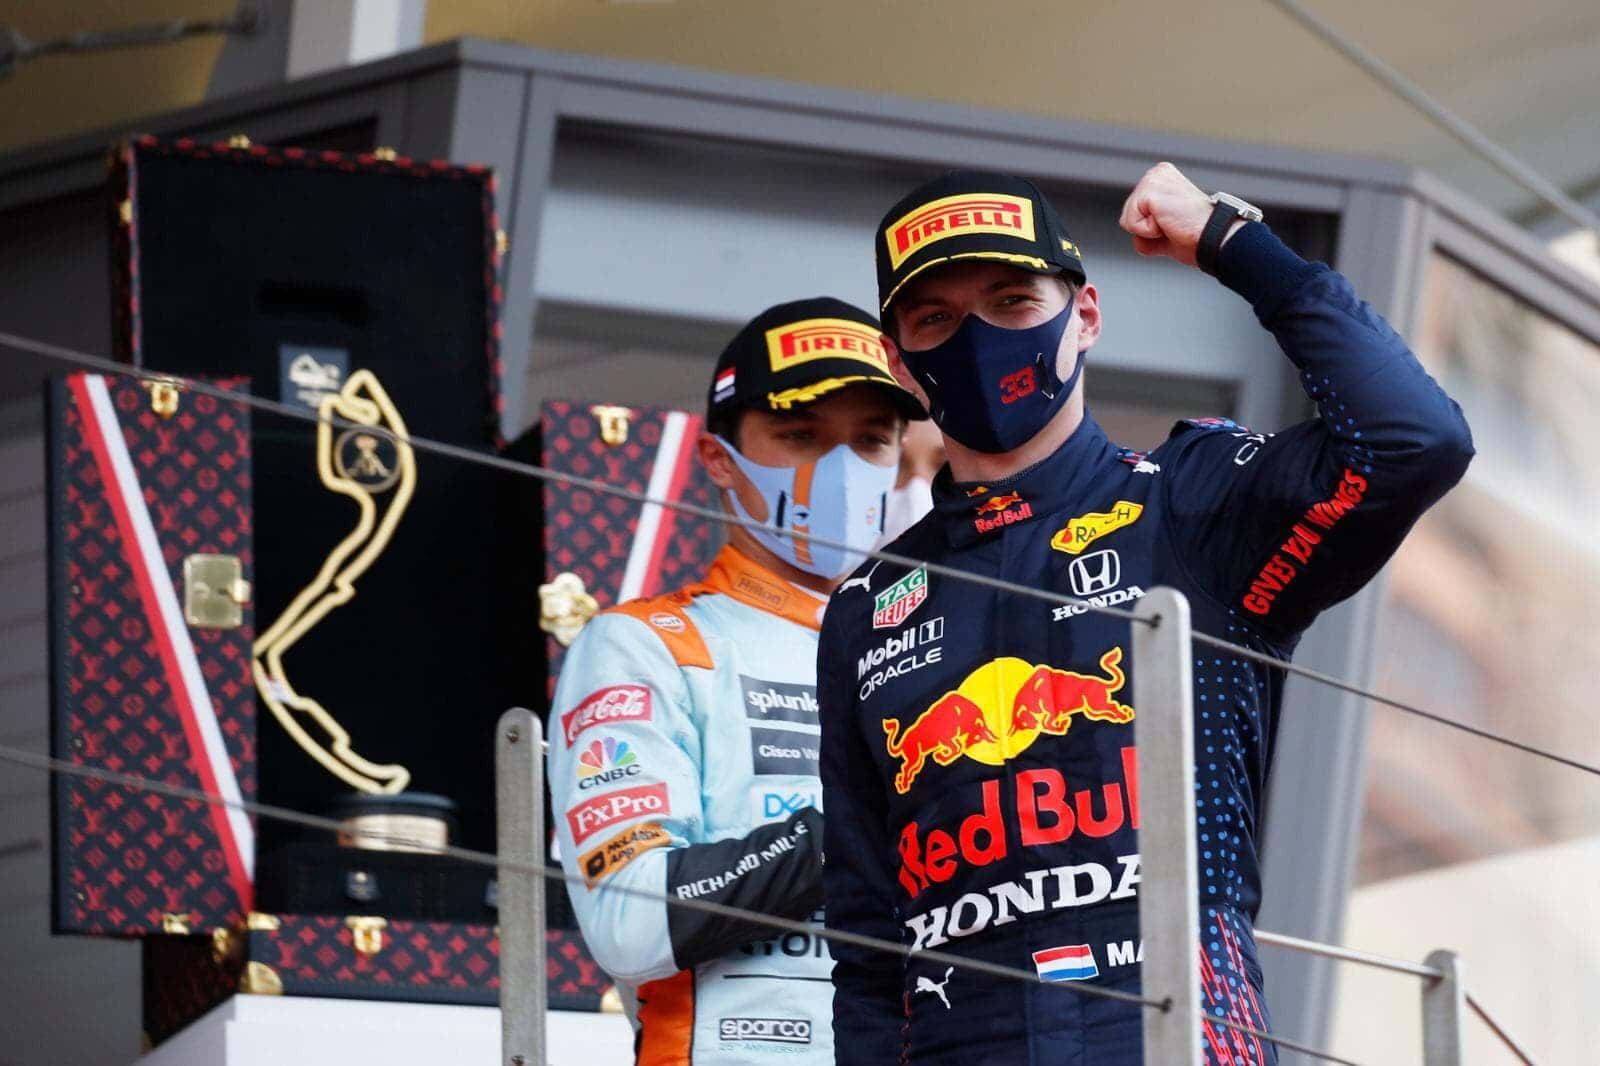 Tag Heuer Max Verstappen's Lucky Charm